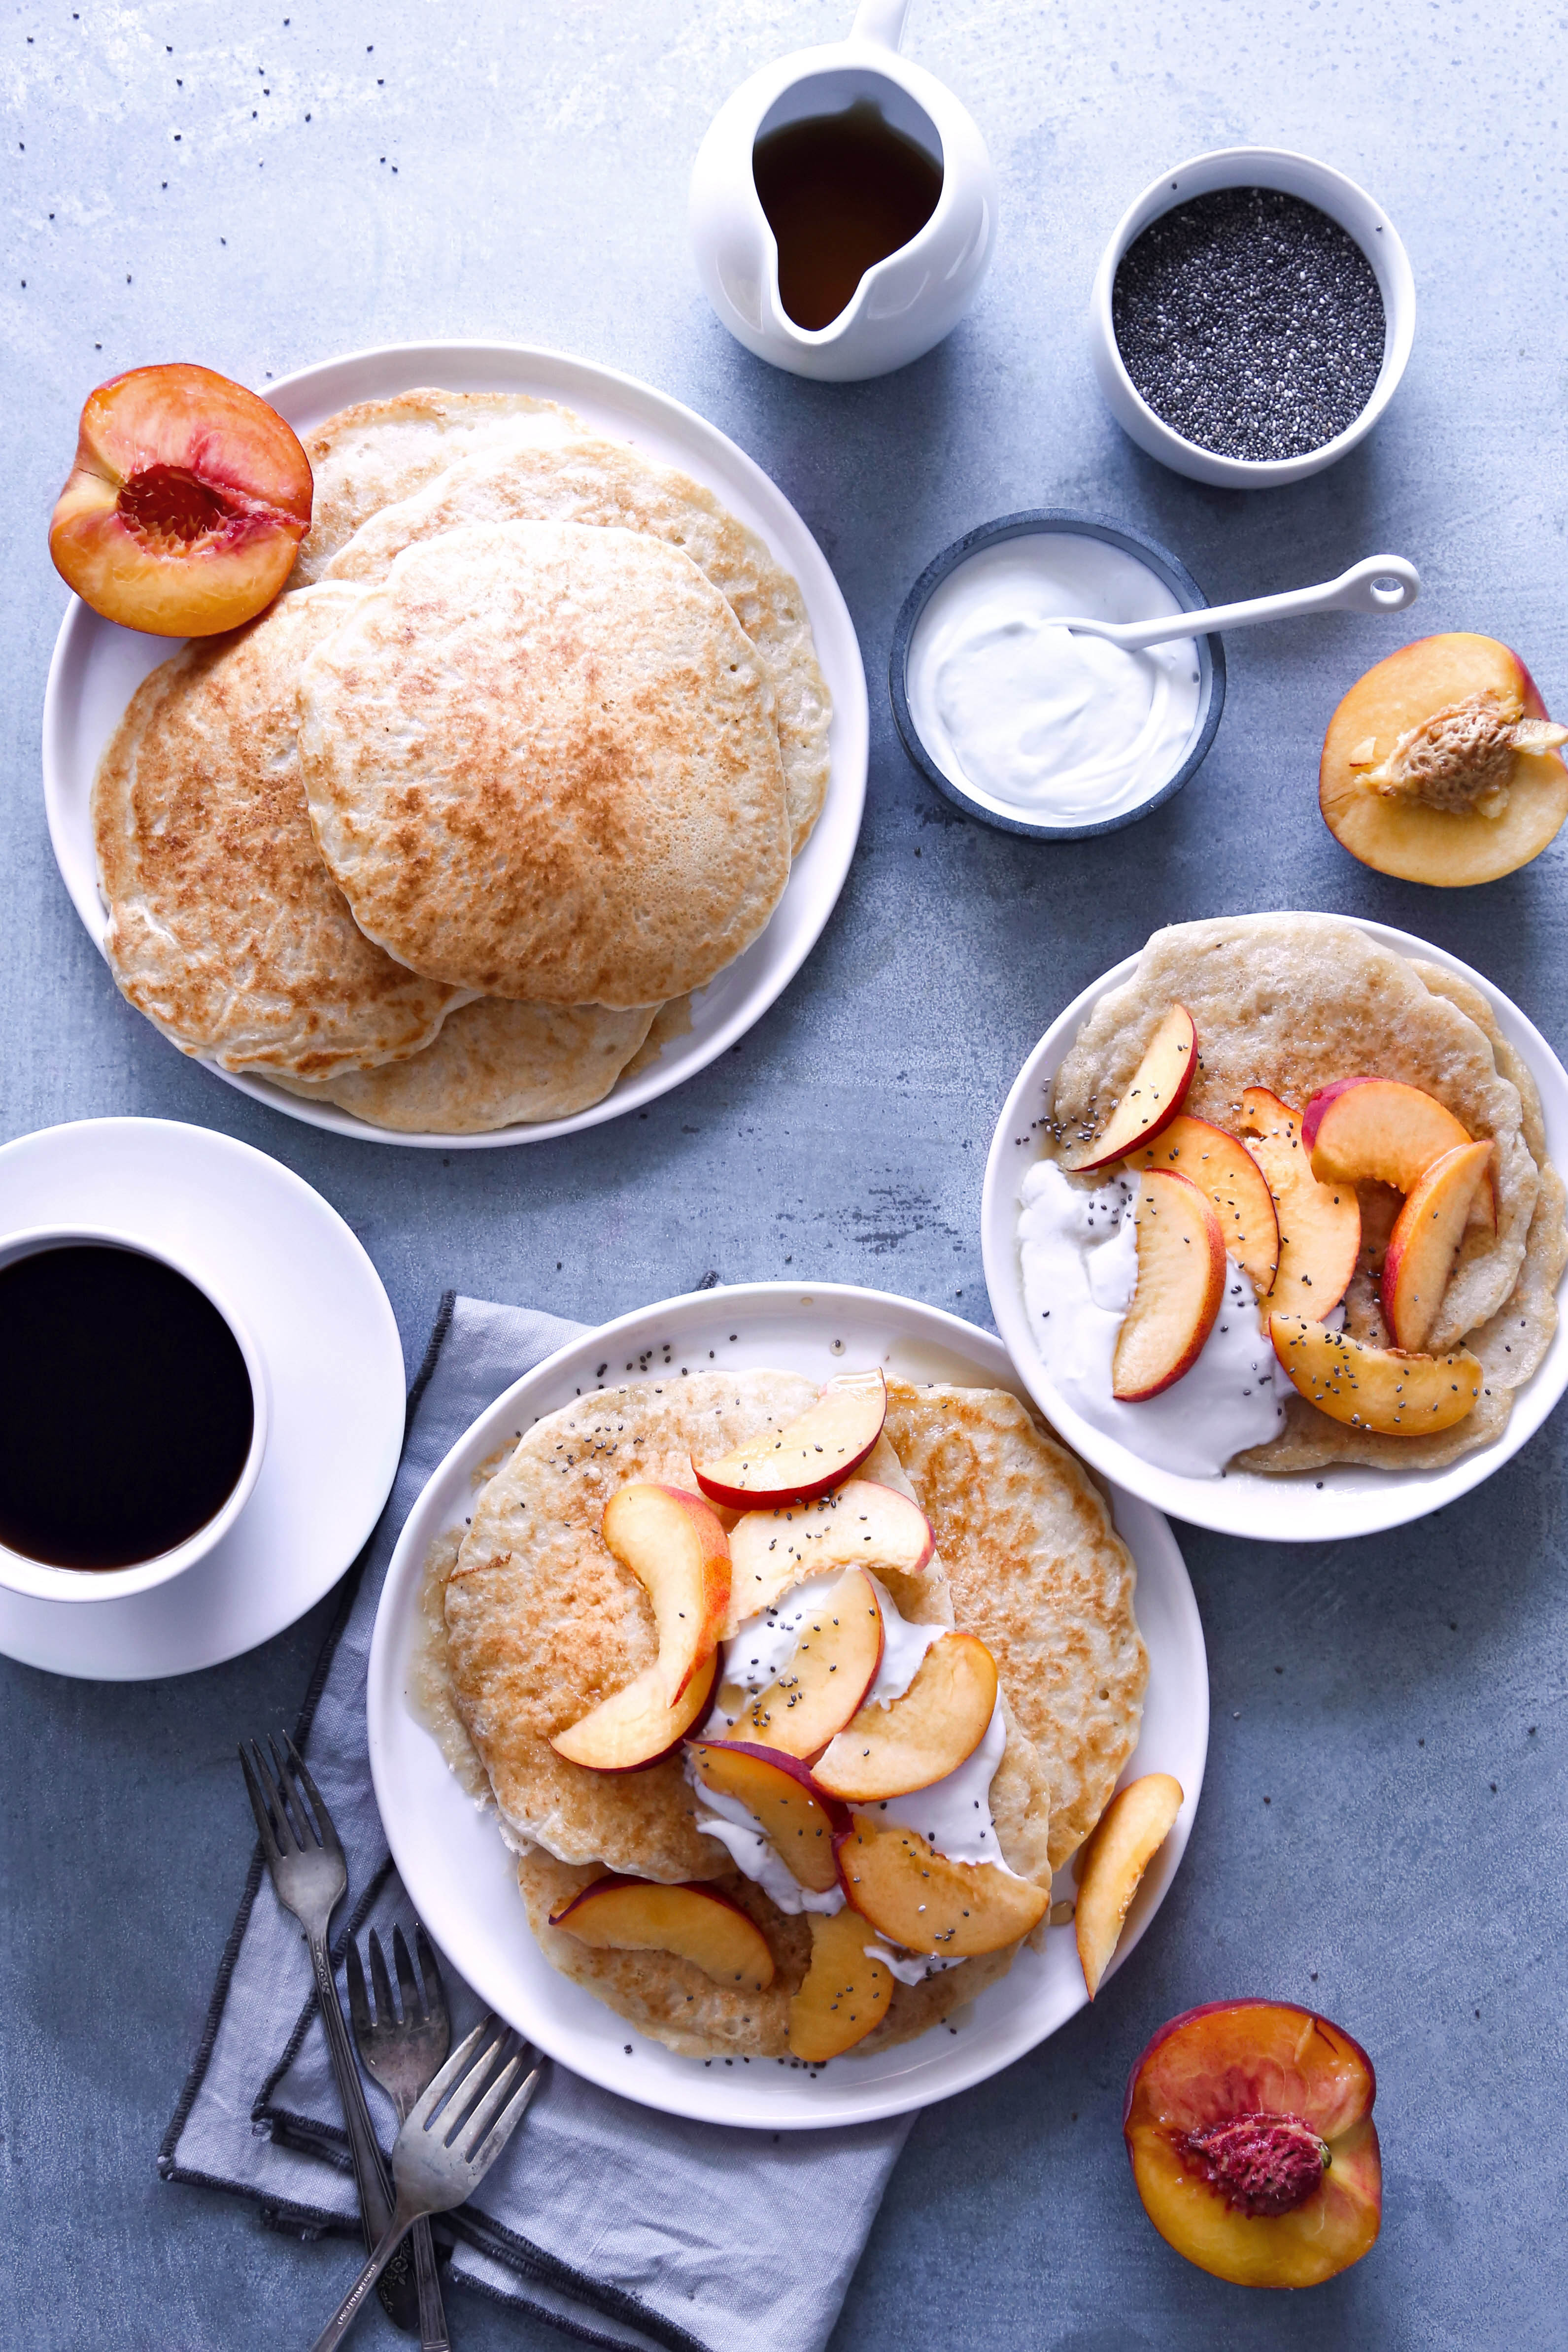 Vegan Pancakes with Peaches and Cream | Gluten-free option included.